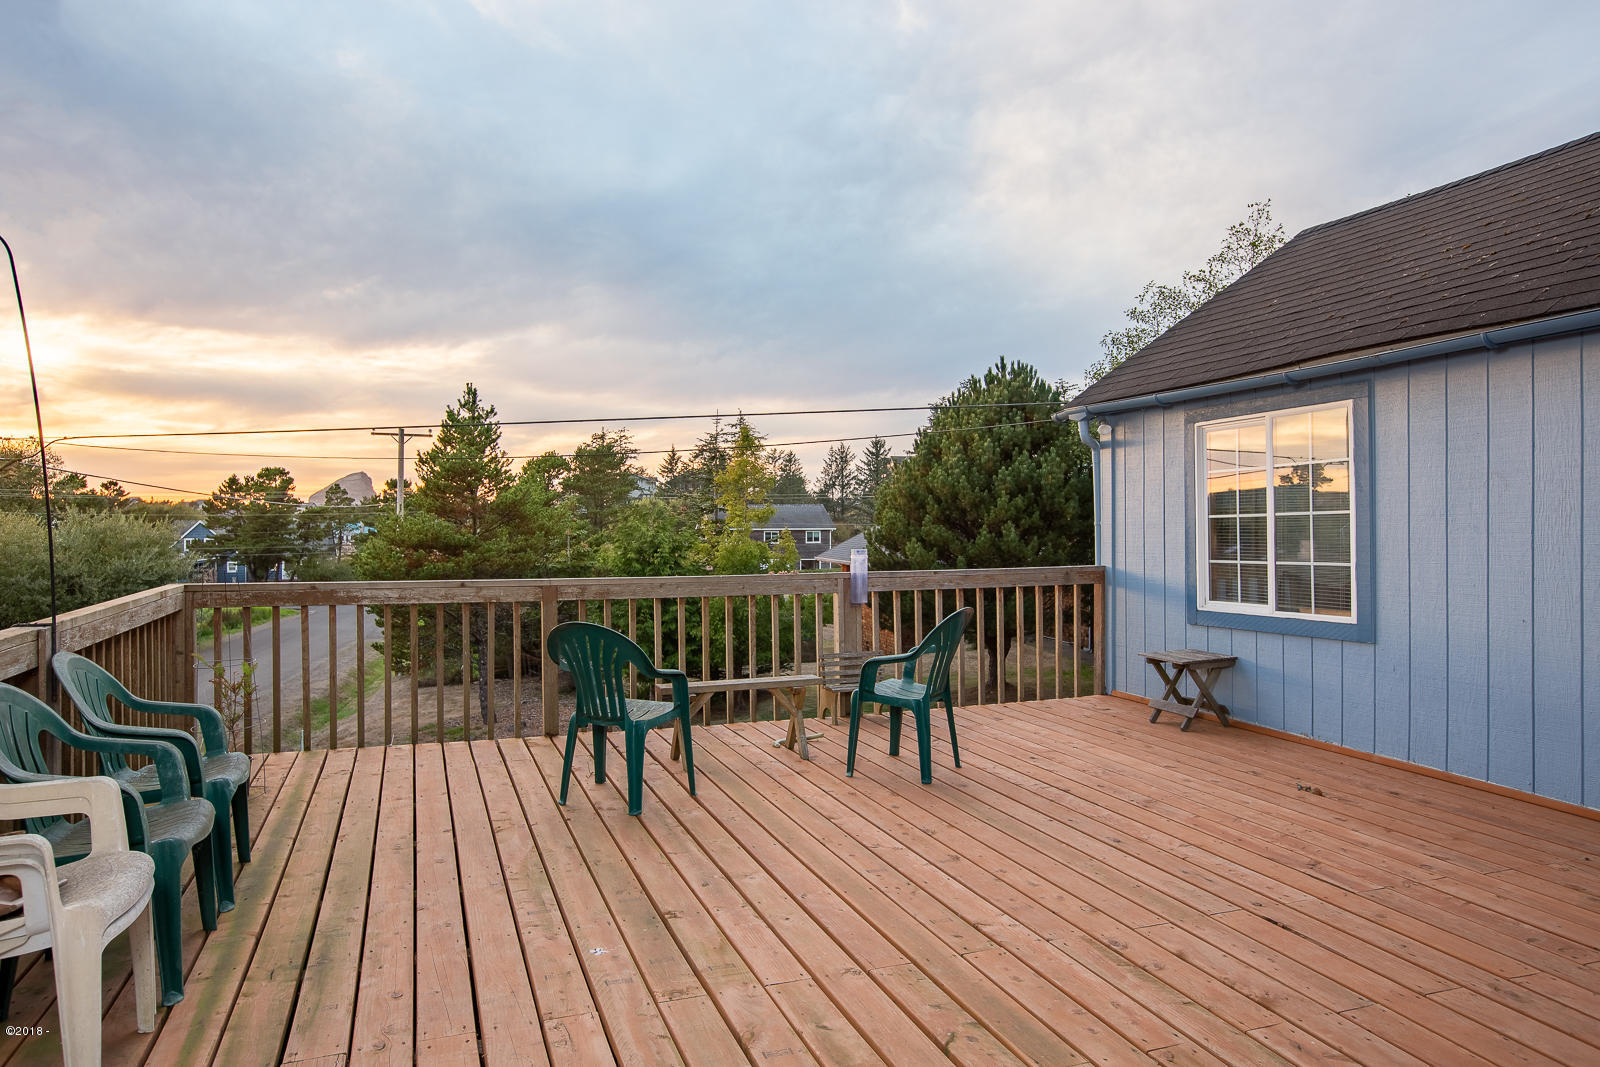 6420 Camp St, Pacific City, OR 97135 - Deck with Haystack Rock Views